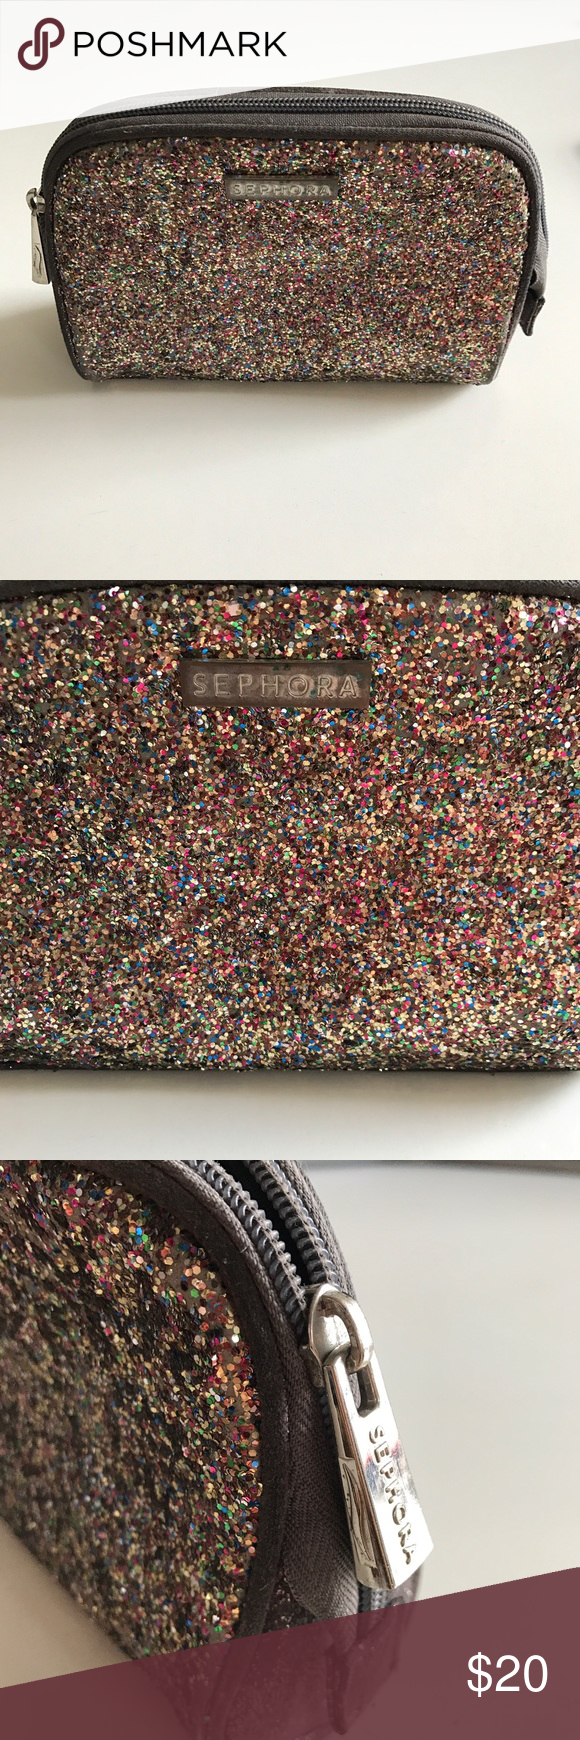 Sephora Leather & Glitter Makeup Bag Leather beautiful